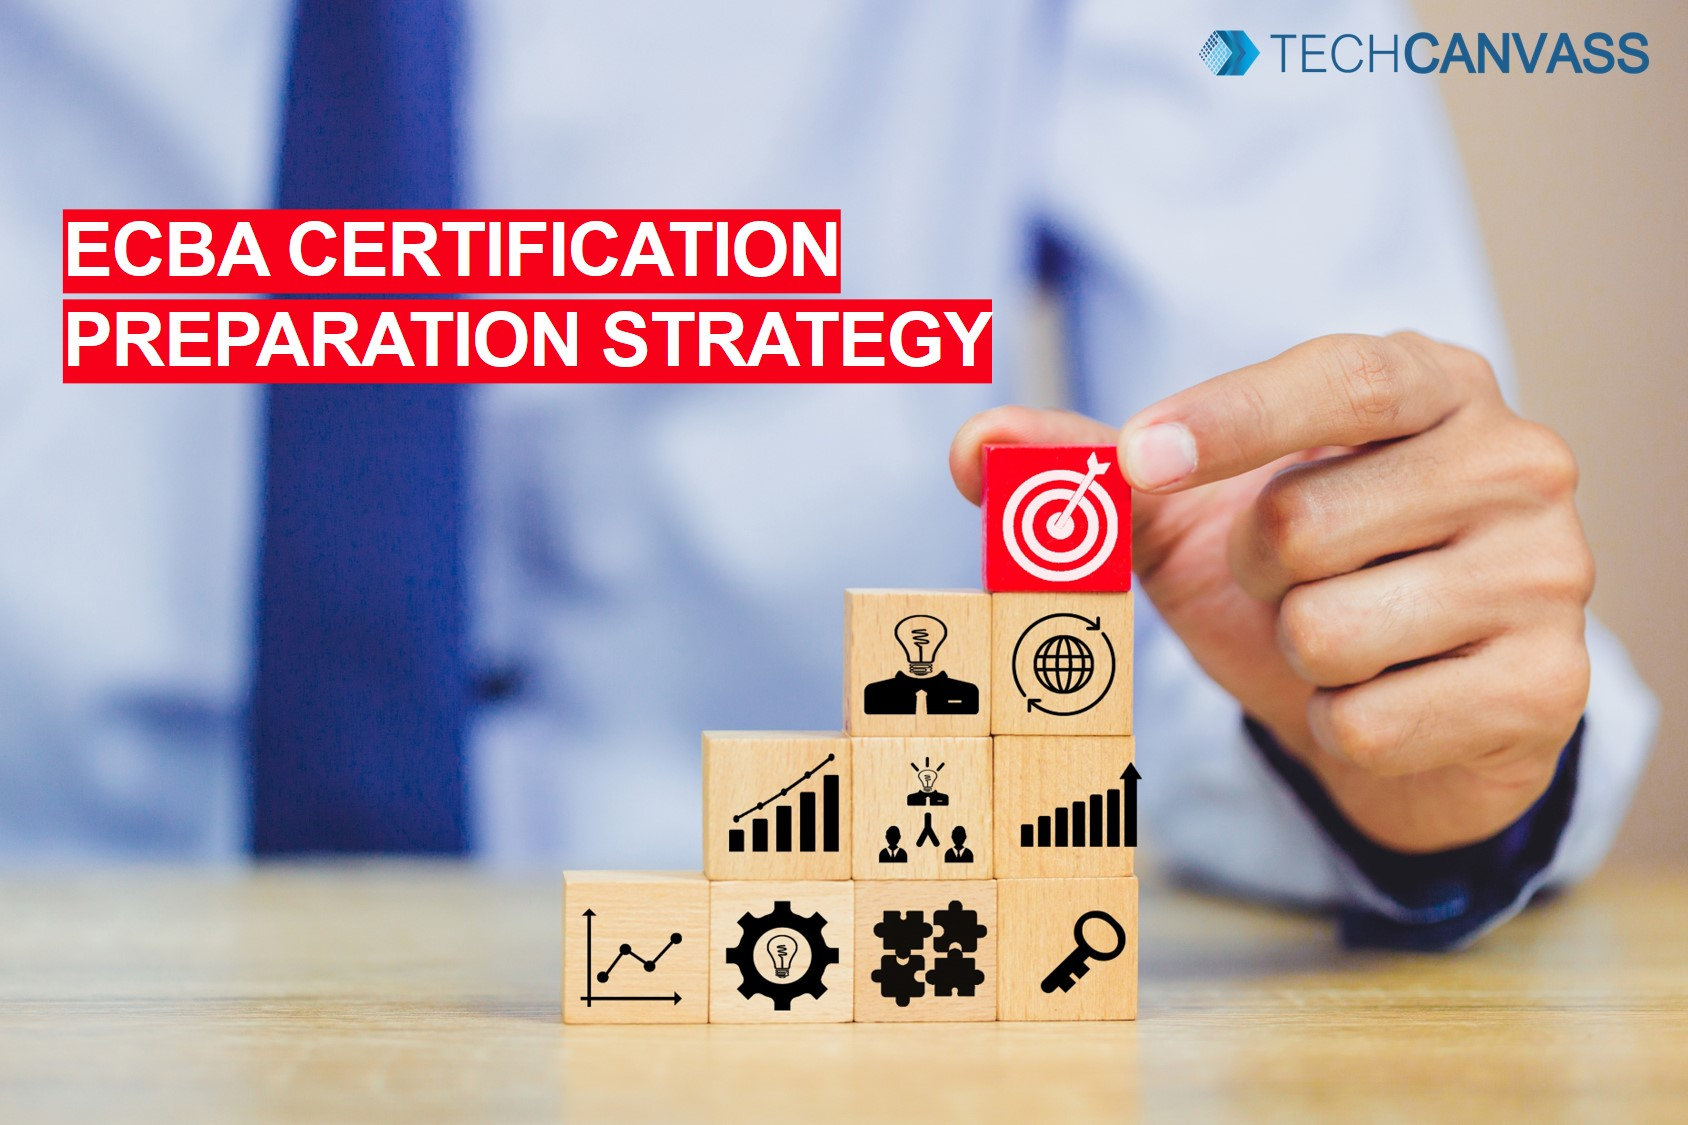 How to Prepare For ECBA Certification: Complete Preparation Strategy